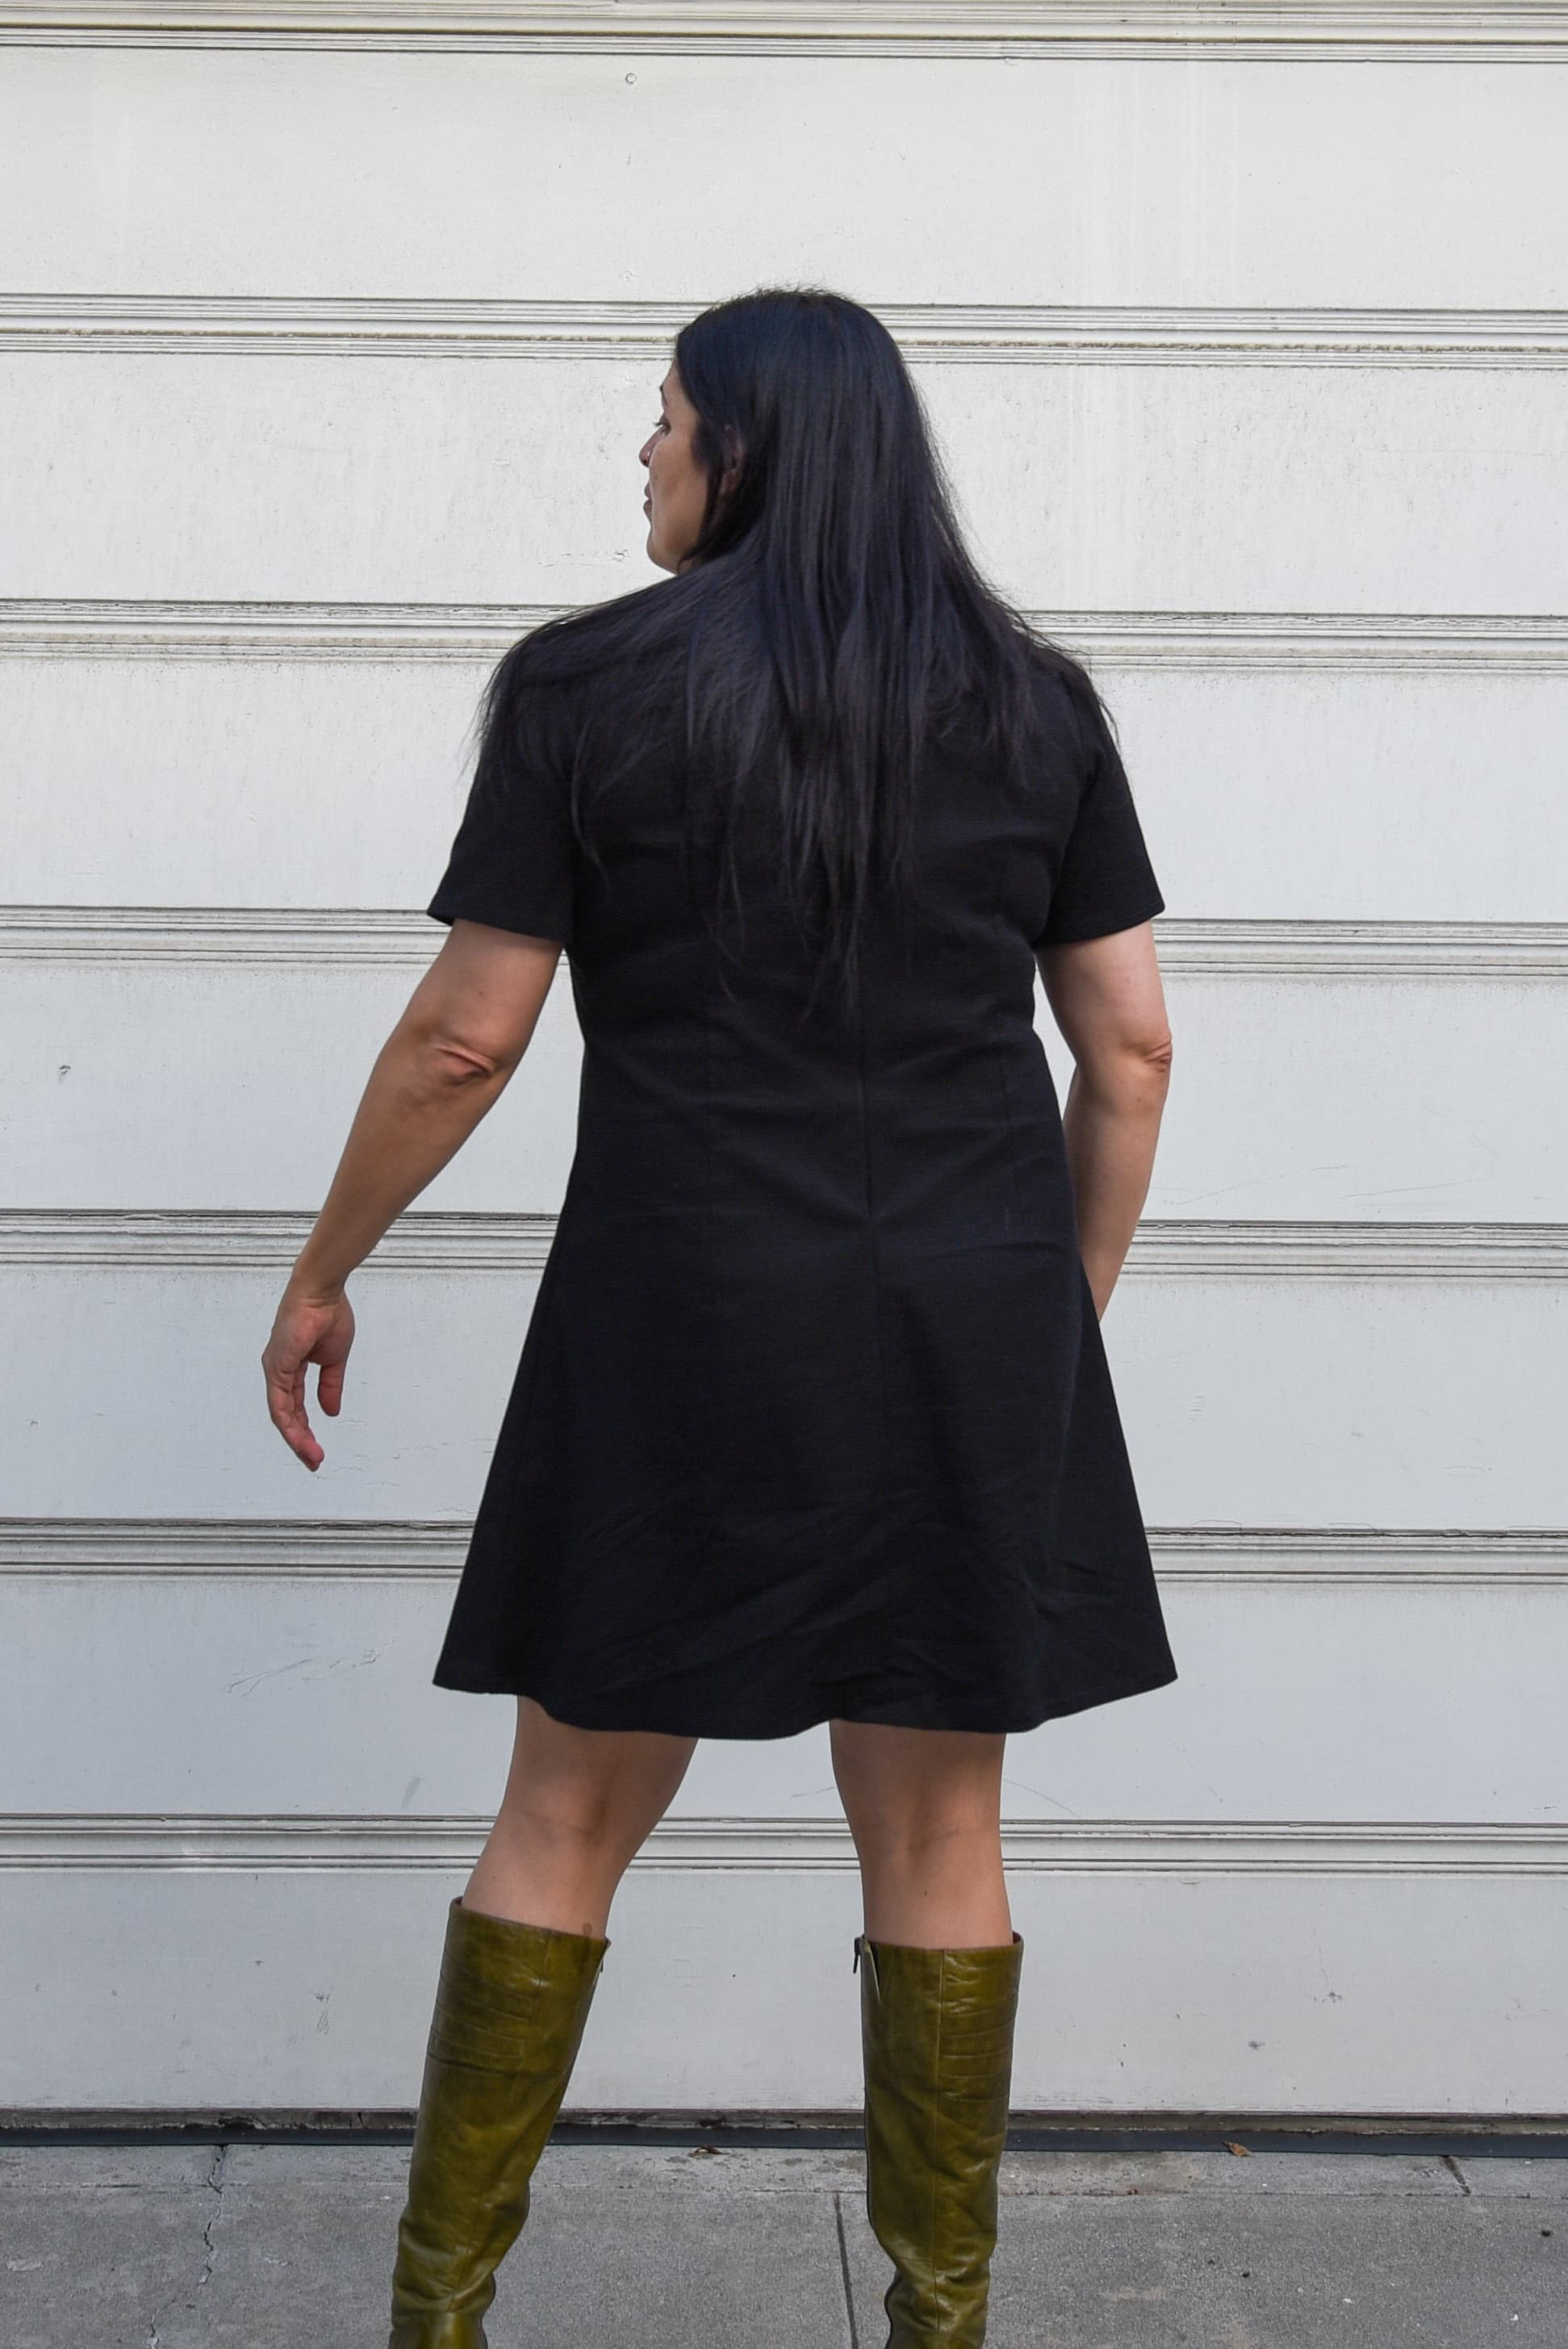 Image of woman standing in front of a garage door, back facing the camera, wearing Simplicity 3833, an A-line dress in black pique cotton and boots